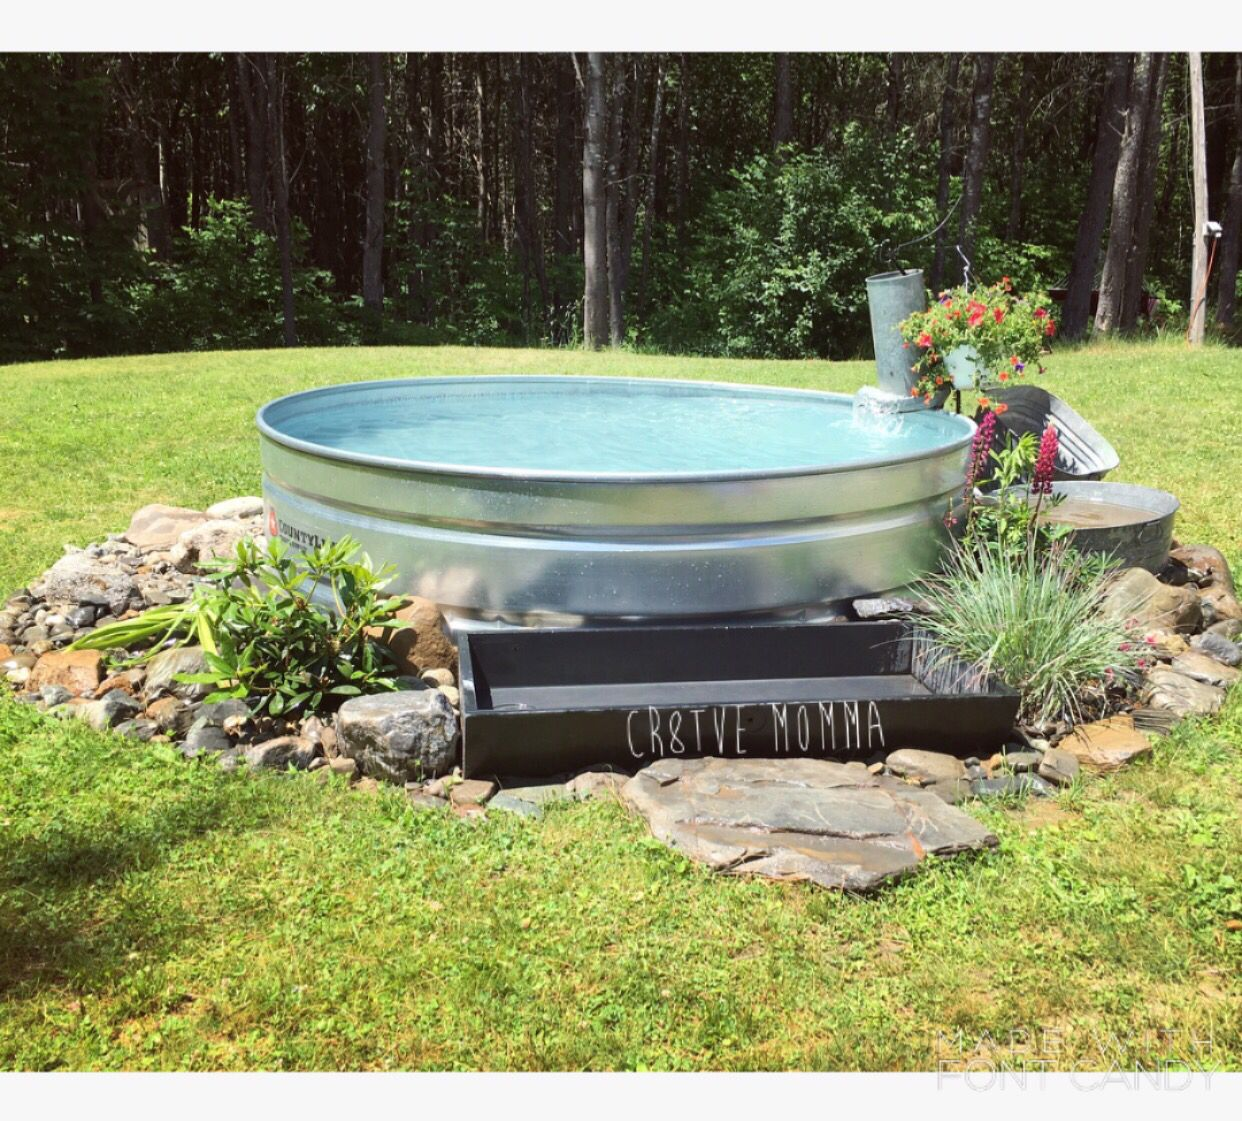 Pin by cr8tve momma on outside fun stock tank pool - How to filter a stock tank swimming pool ...